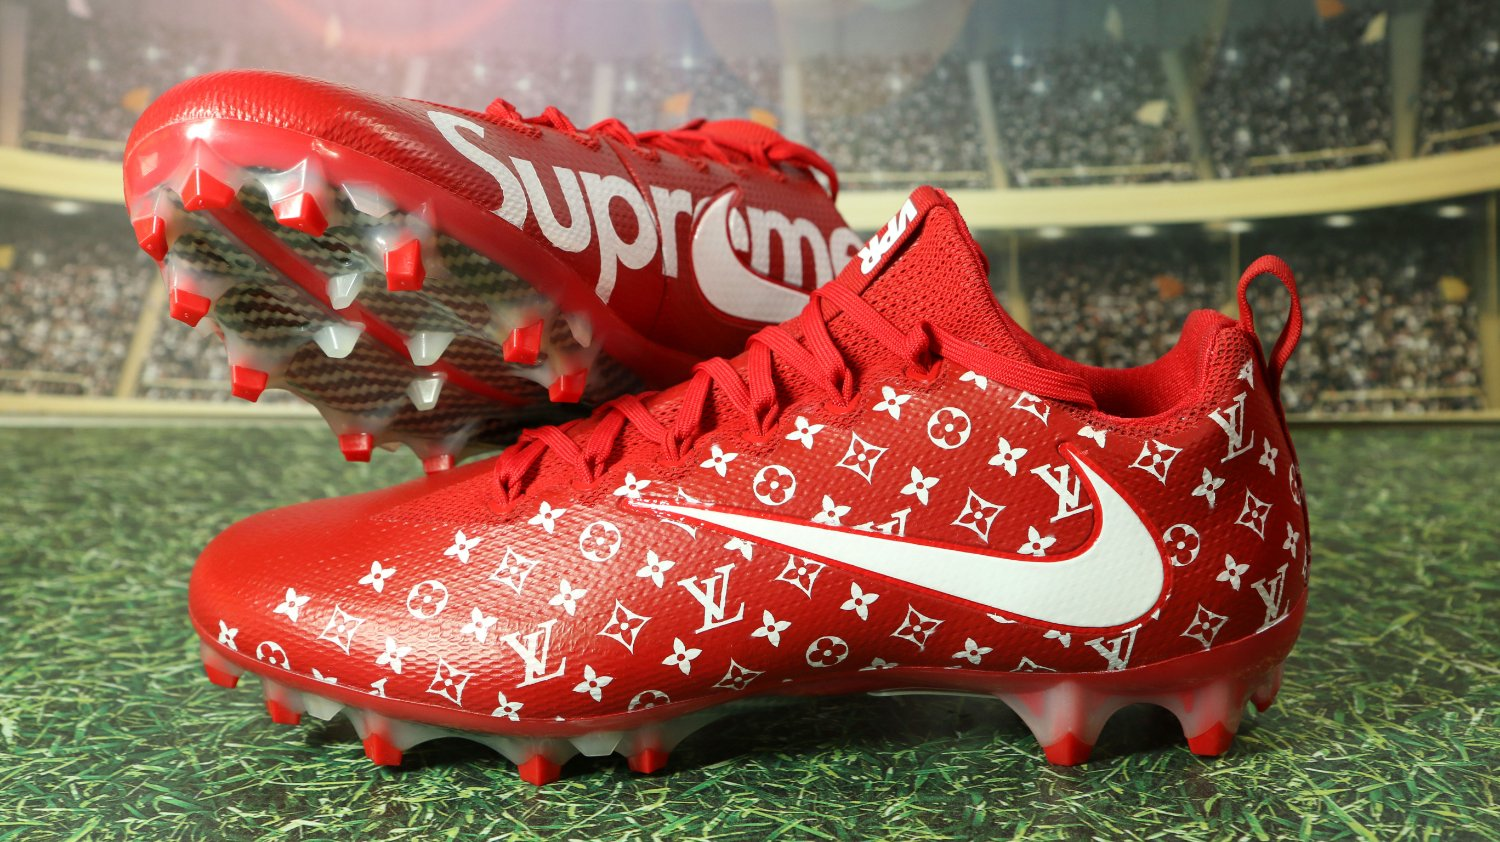 71fe2c30c049 Custom Supreme Cleats - John Blue